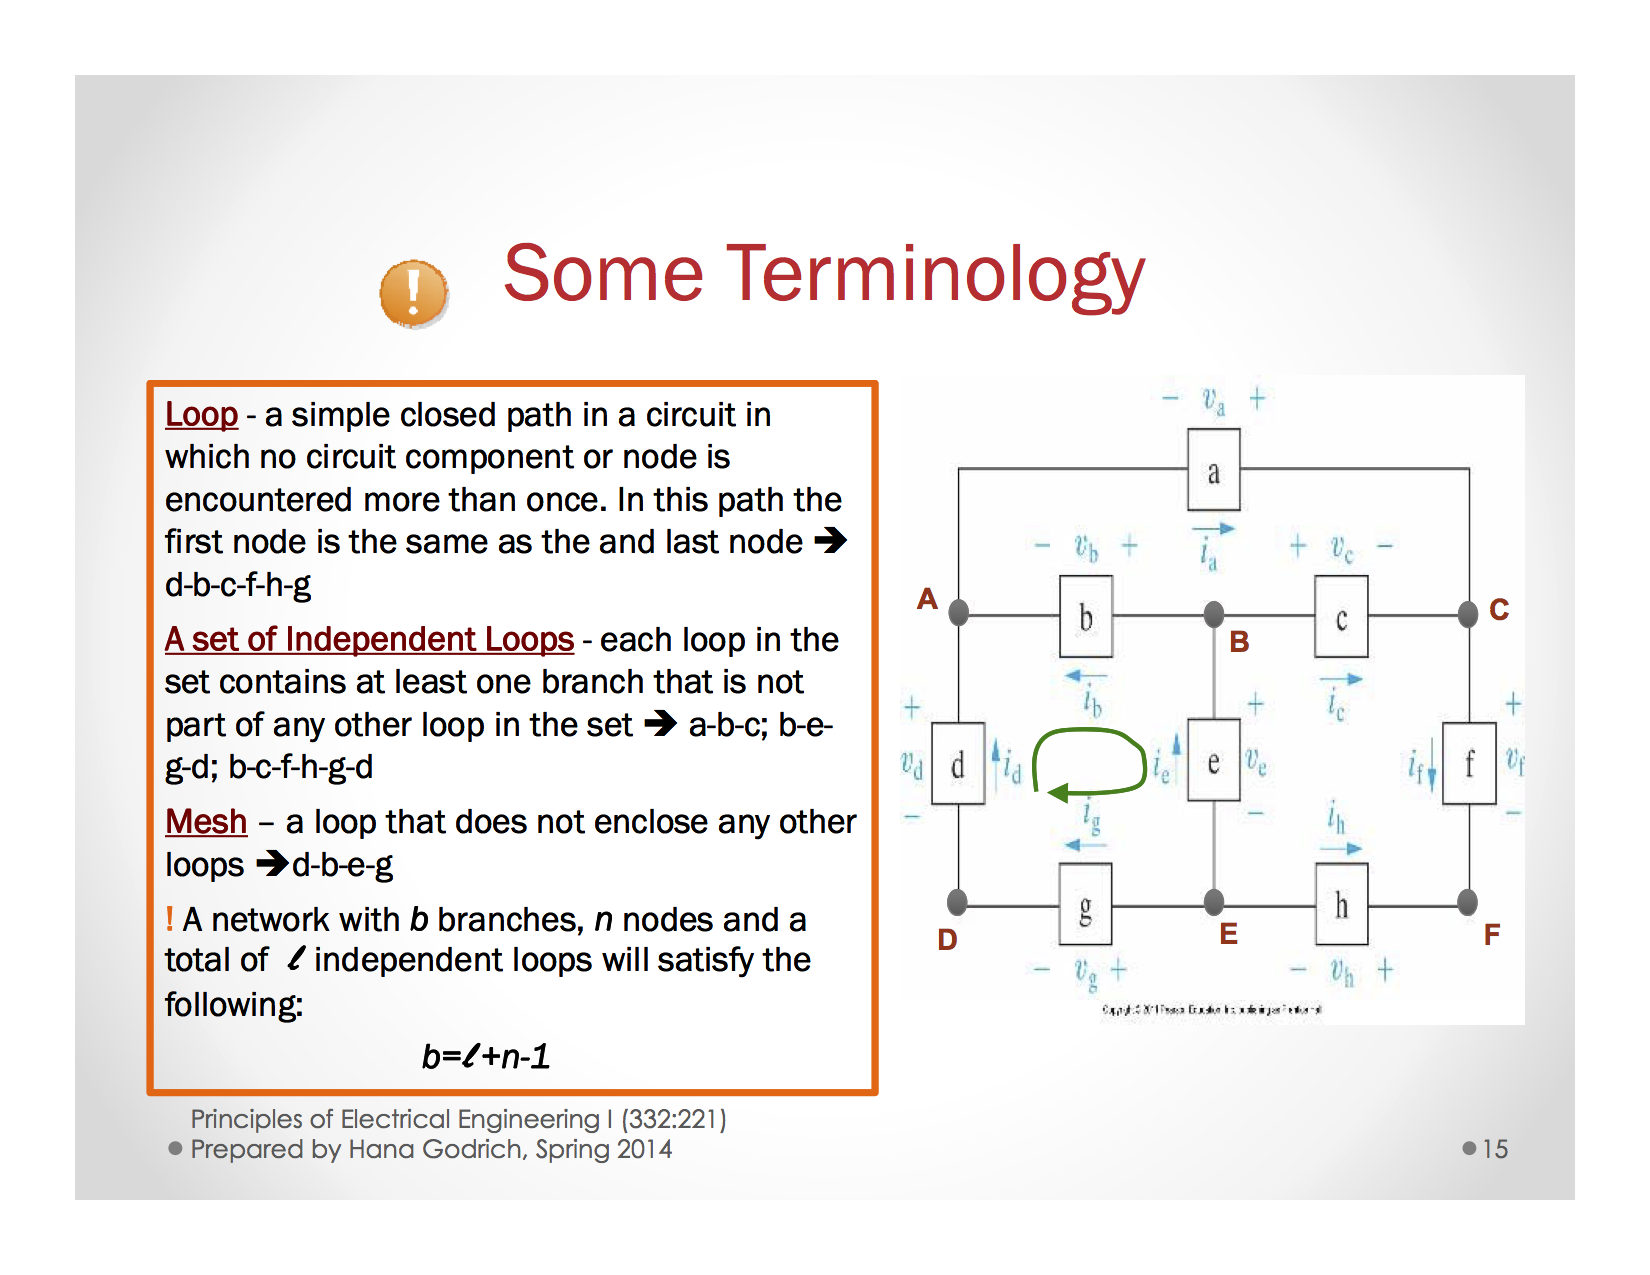 Circuit and definitions slide